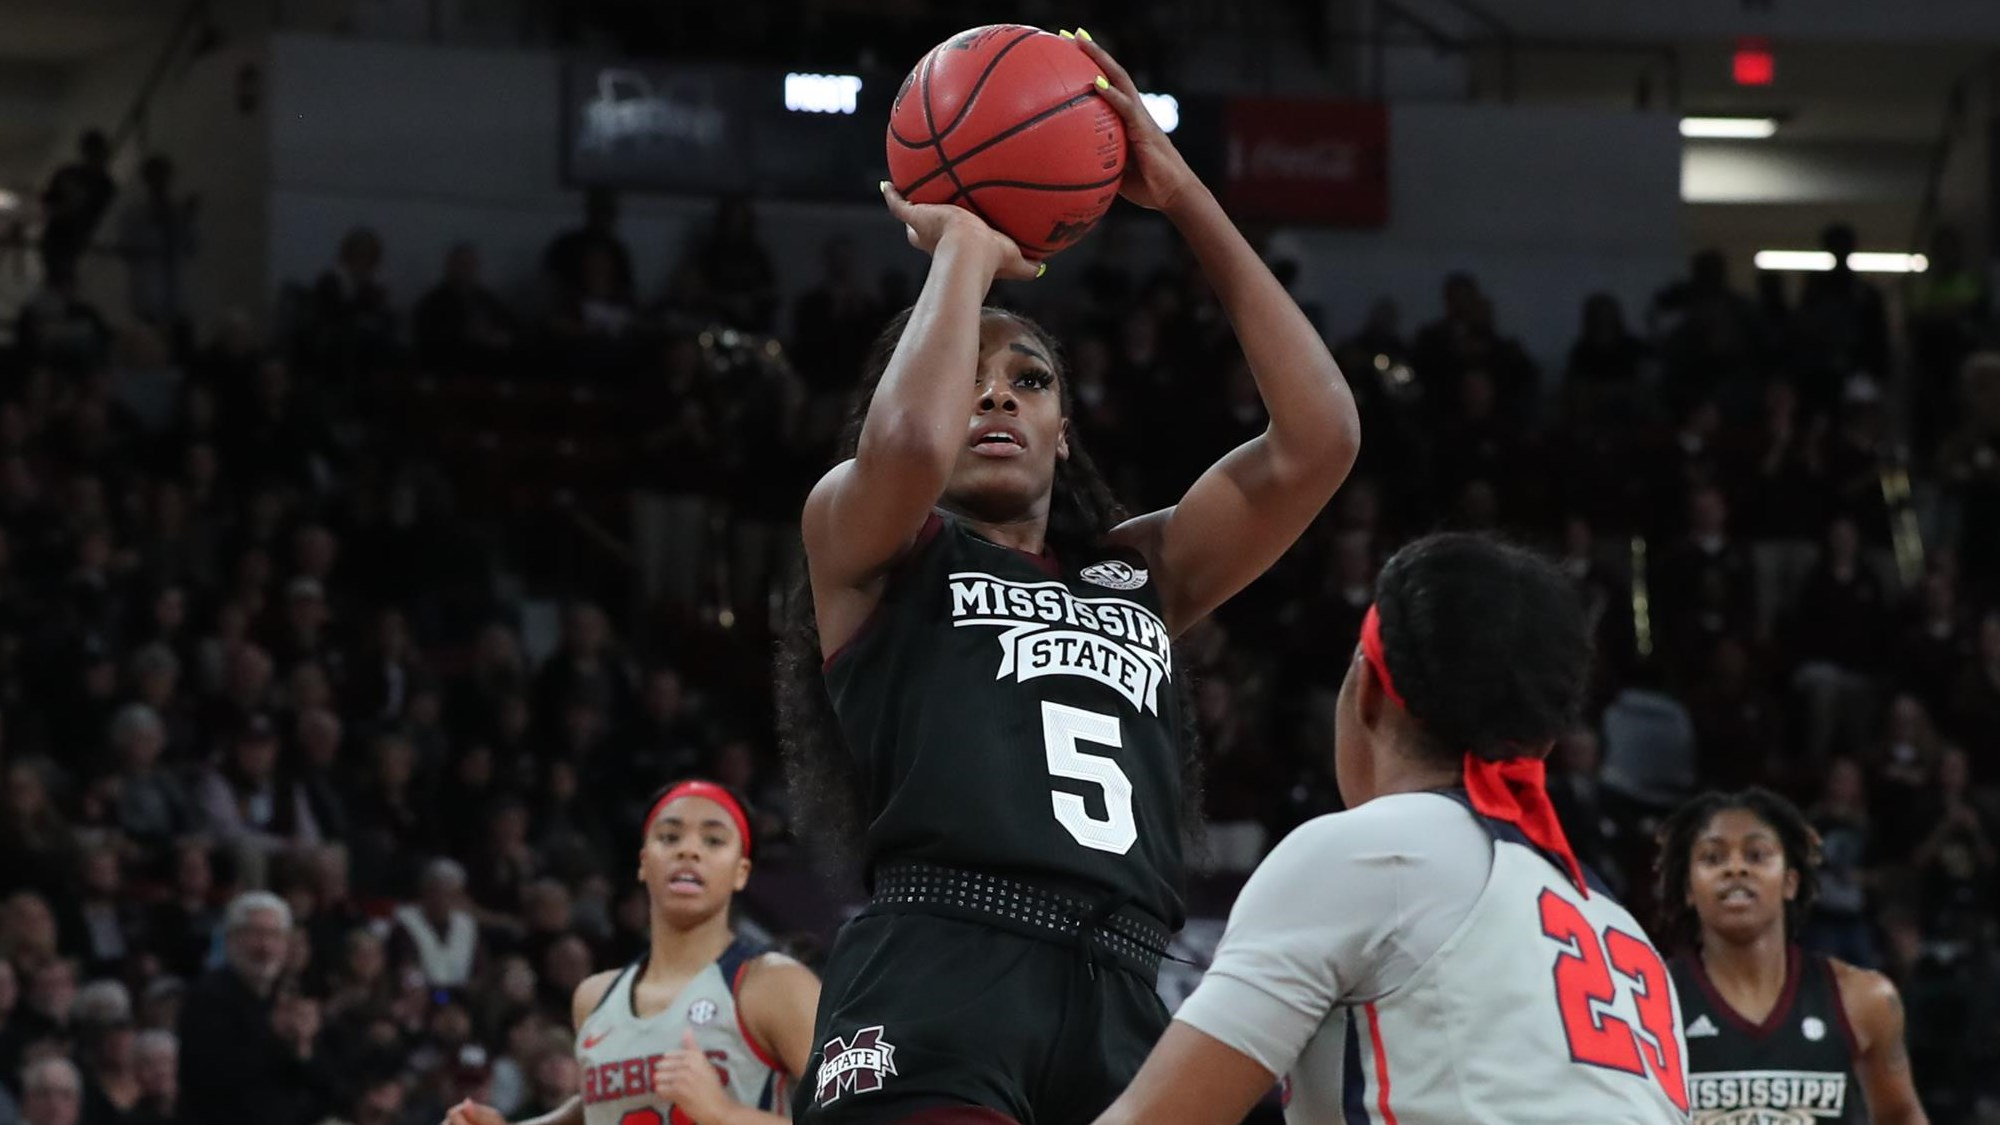 Fans enjoy rivalry antics and nods to history as Mississippi State routs Ole Miss, 80-49